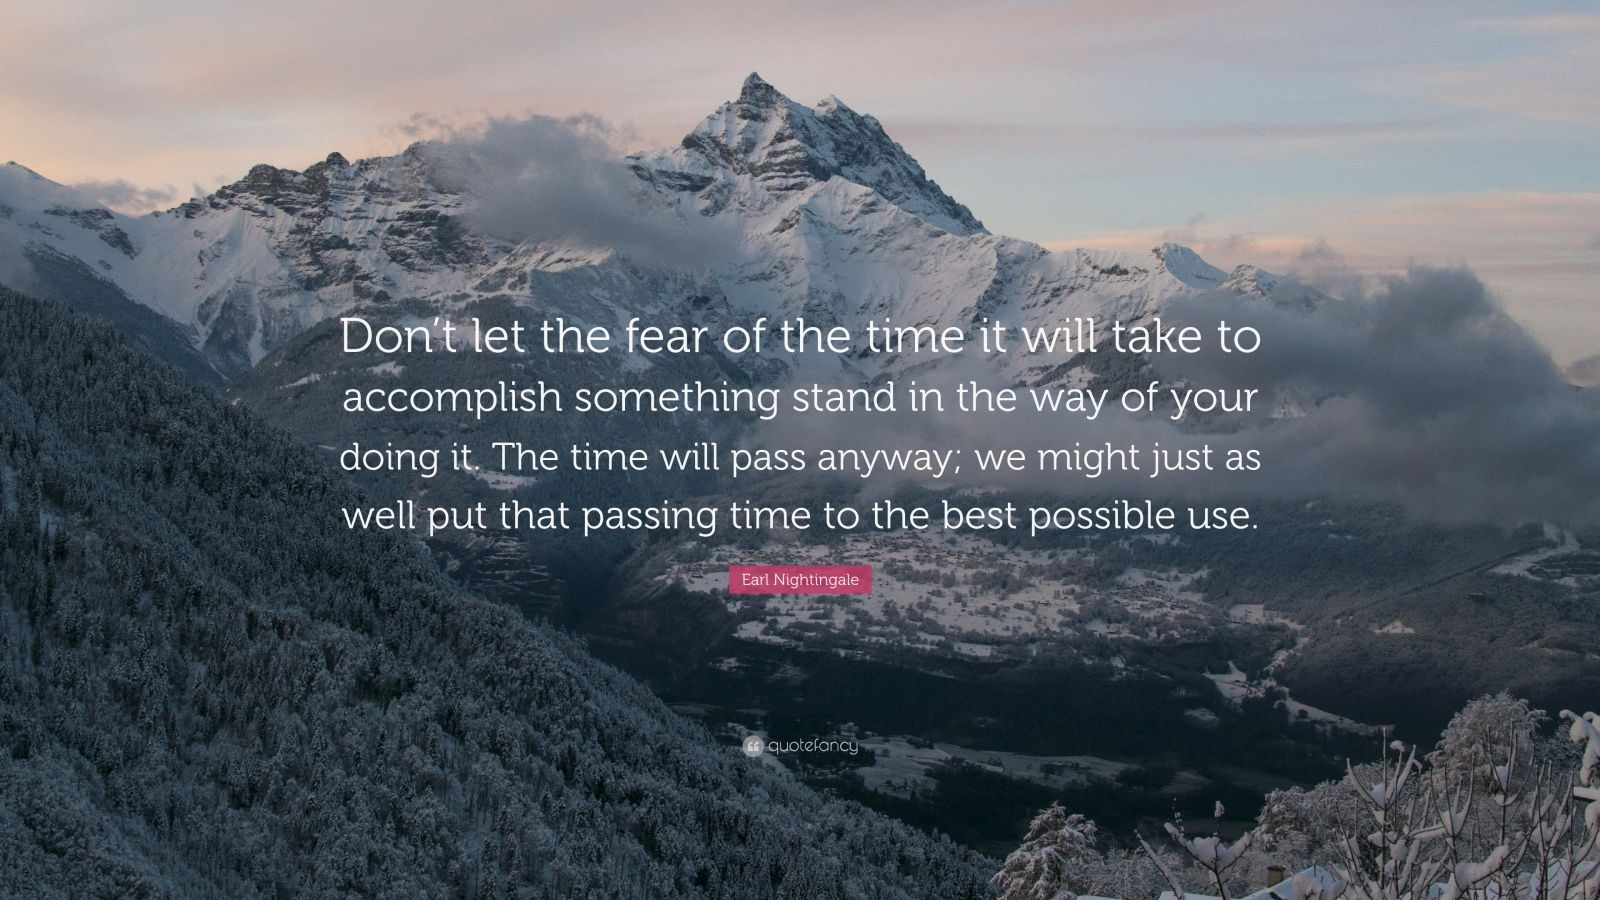 """Earl Nightingale Quote: """"Don't let the fear of the time it will take to accomplish something stand in the way of your doing it. The time will pass anyway; we might just as well put that passing time to the best possible use."""""""